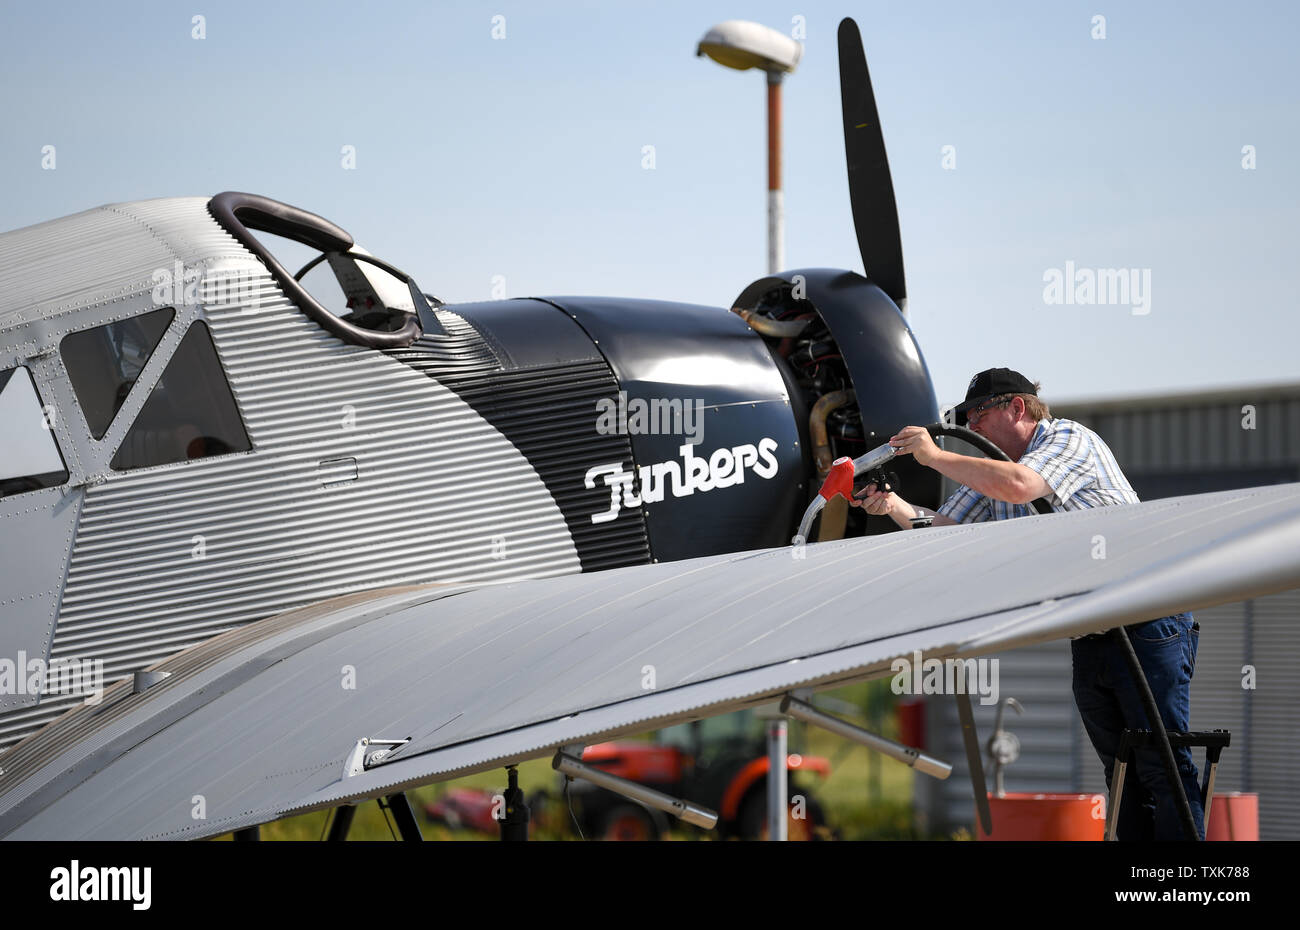 25 June 2019, Saxony-Anhalt, Dessau-Roßlau: A Junkers F 13 aircraft is refuelled at the airfield in Dessau. Exactly 100 years ago, an aircraft of this type took off for the first time in Dessau. The aircraft, designed by aircraft pioneer Hugo Junkers, was the world's first all-metal commercial aircraft and is regarded as a pioneer in civil aviation. Since 2016, the machine has again been manufactured in small series in Switzerland. Photo: Hendrik Schmidt/dpa-Zentralbild/dpa - Stock Image